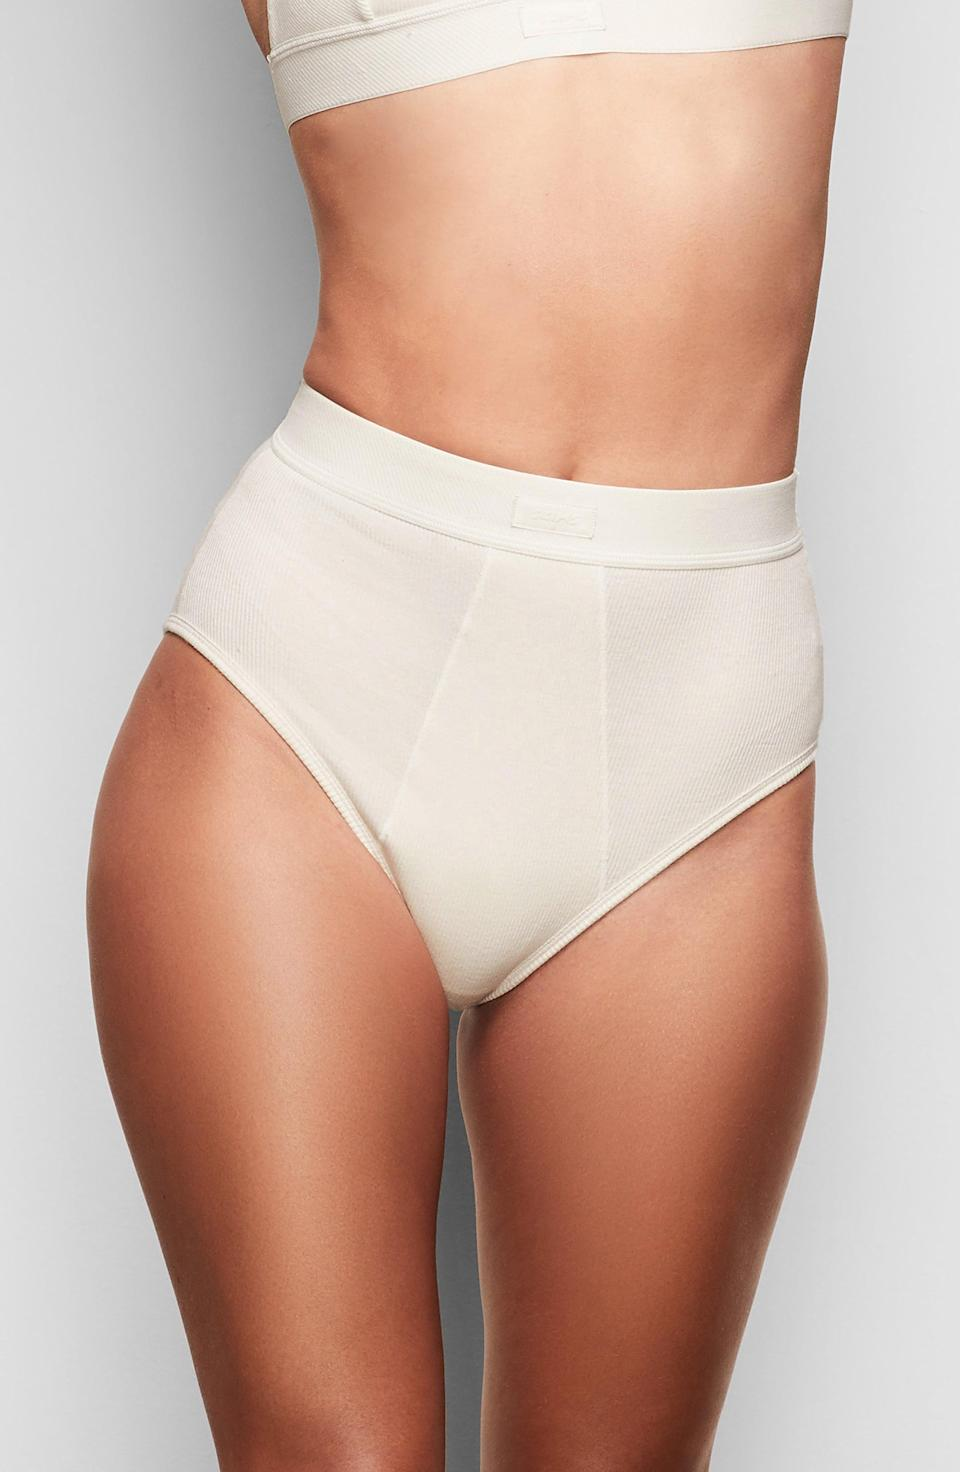 """<h3>Skims Cotton Rib Brief<br></h3><br><br><strong>The Most Supportive</strong><br><br>We know that Kim K. spent many moons engineering top-notch underwear of many varieties for her intimates brand Skims, and it looks like her hard work paid off — these super-soft cotton rib briefs have reviewers sitting pretty. (And comfortably.) Customers love this cotton underwear's fit and light support. <br><br><strong>The Hype: </strong>4.6 out of 5 stars; 380 reviews on <a href=""""https://skims.com/products/cotton-rib-brief-bone"""" rel=""""nofollow noopener"""" target=""""_blank"""" data-ylk=""""slk:Skims.com"""" class=""""link rapid-noclick-resp"""">Skims.com</a><br><br><strong>What They Are Saying:</strong> """"I feel secure but also cute in these. They have perfect support where I need it. They're nice and thick without being too thick. I am blown away by how much I love these. Seriously, if you spend this much on underwear from other brands, then you need to get these. All in all, they're not even that expensive — I'm surprised they're as low cost as they are."""" — Da Asha Z., Skims.com reviewer<br><br><strong>Skims</strong> Cotton Rib Briefs, $, available at <a href=""""https://go.skimresources.com/?id=30283X879131&url=https%3A%2F%2Fskims.com%2Fproducts%2Fcotton-rib-brief-bone"""" rel=""""nofollow noopener"""" target=""""_blank"""" data-ylk=""""slk:Skims"""" class=""""link rapid-noclick-resp"""">Skims</a>"""